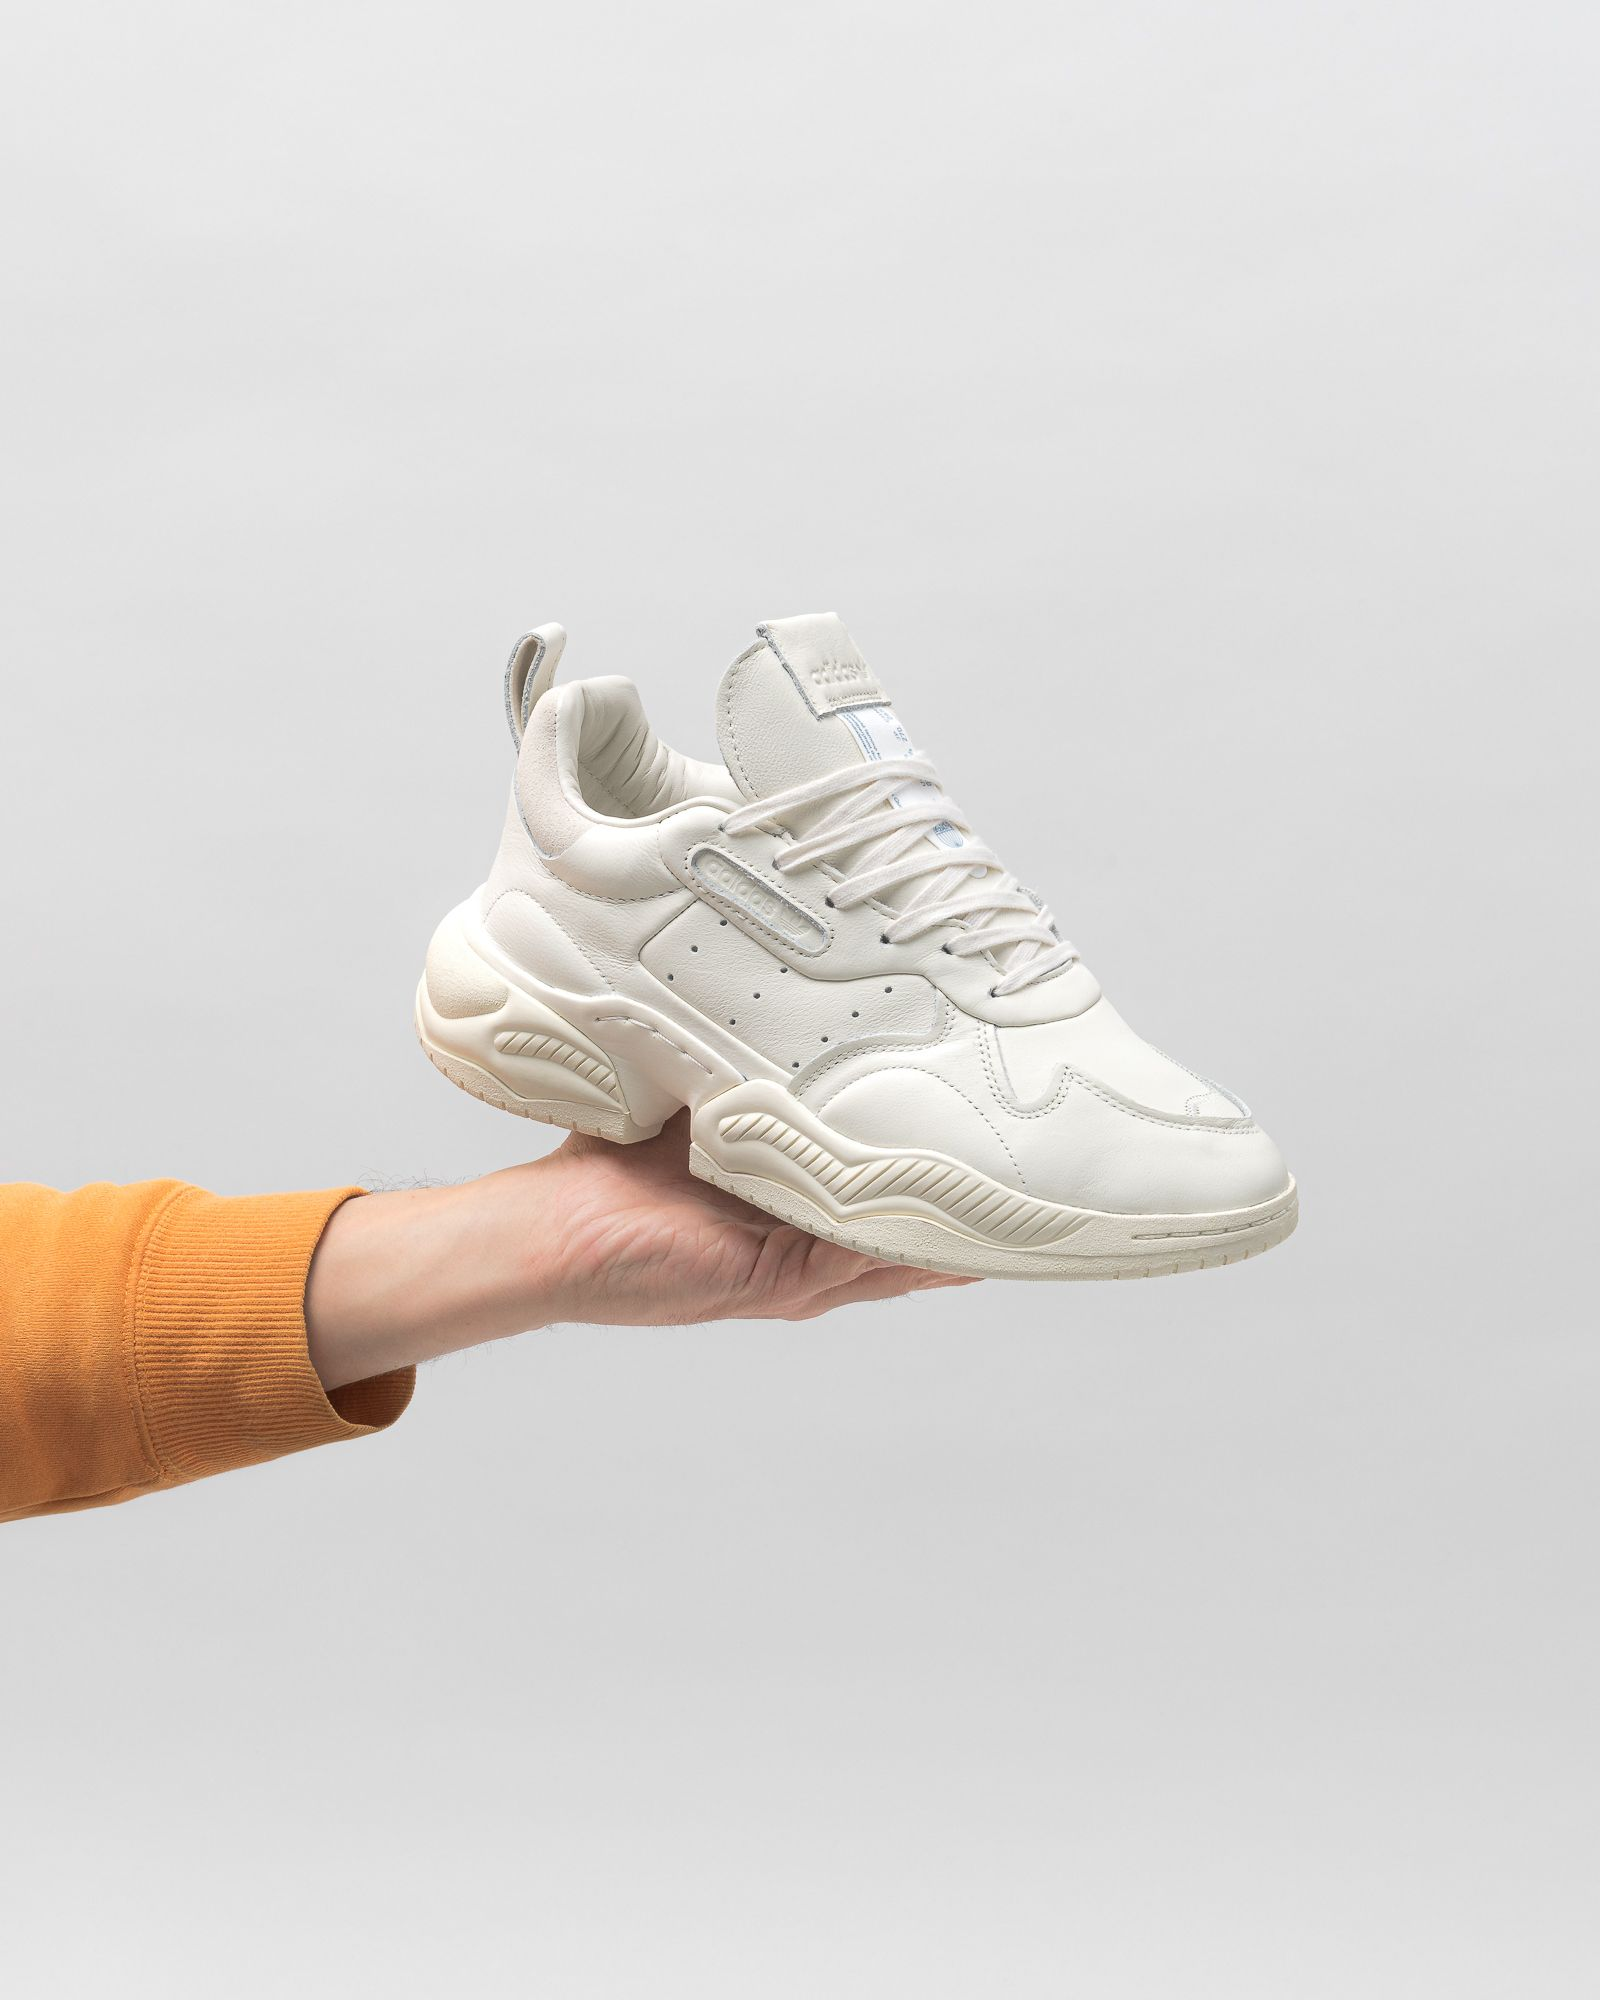 adidas Supercourt RX in 2020 | New sneaker releases, Adidas